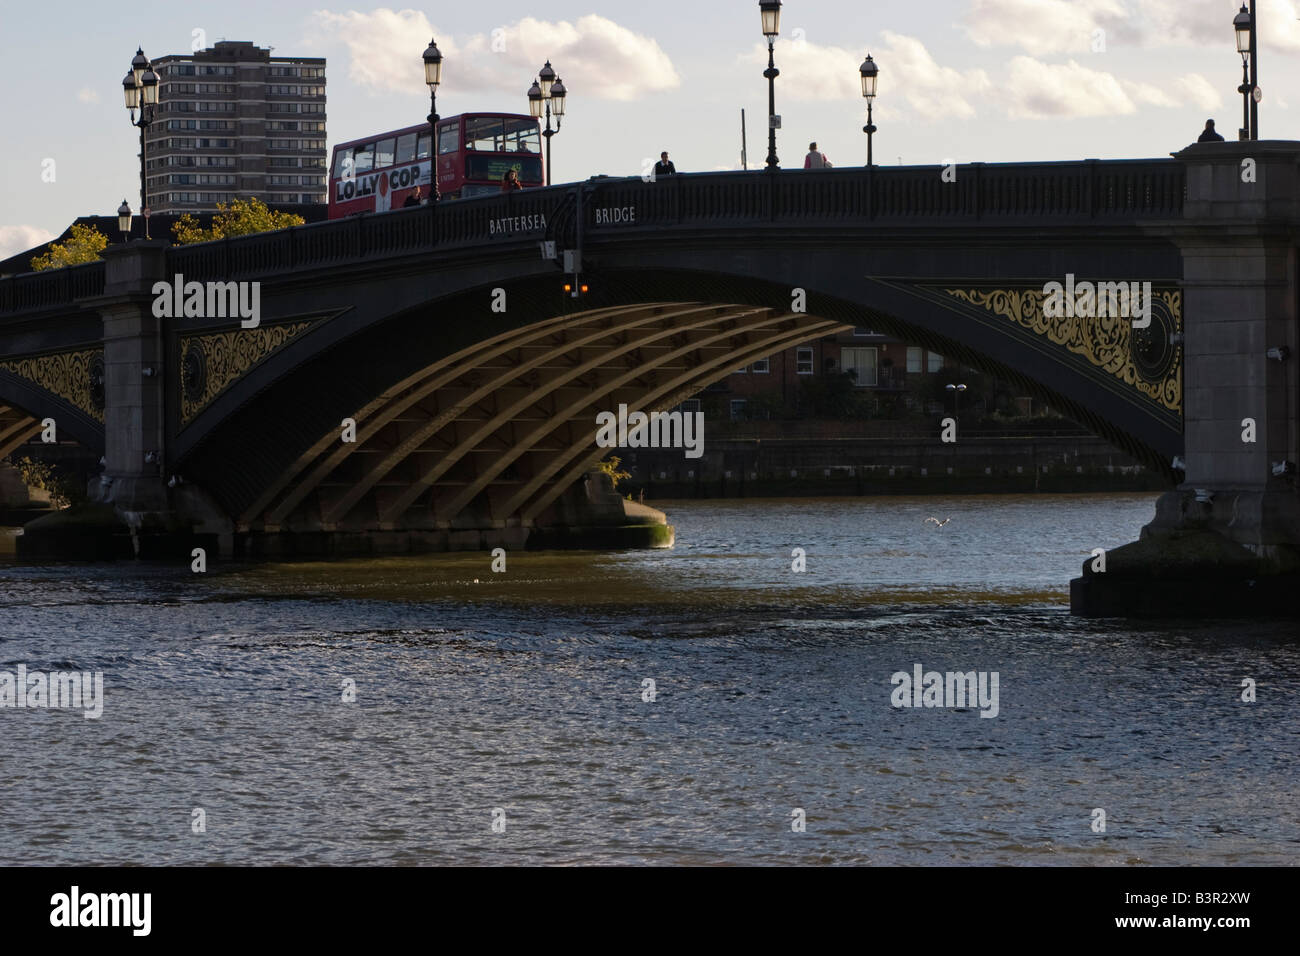 View of bus travelling over Battersea Bridge from Chelsea Embankment, London, England - Stock Image